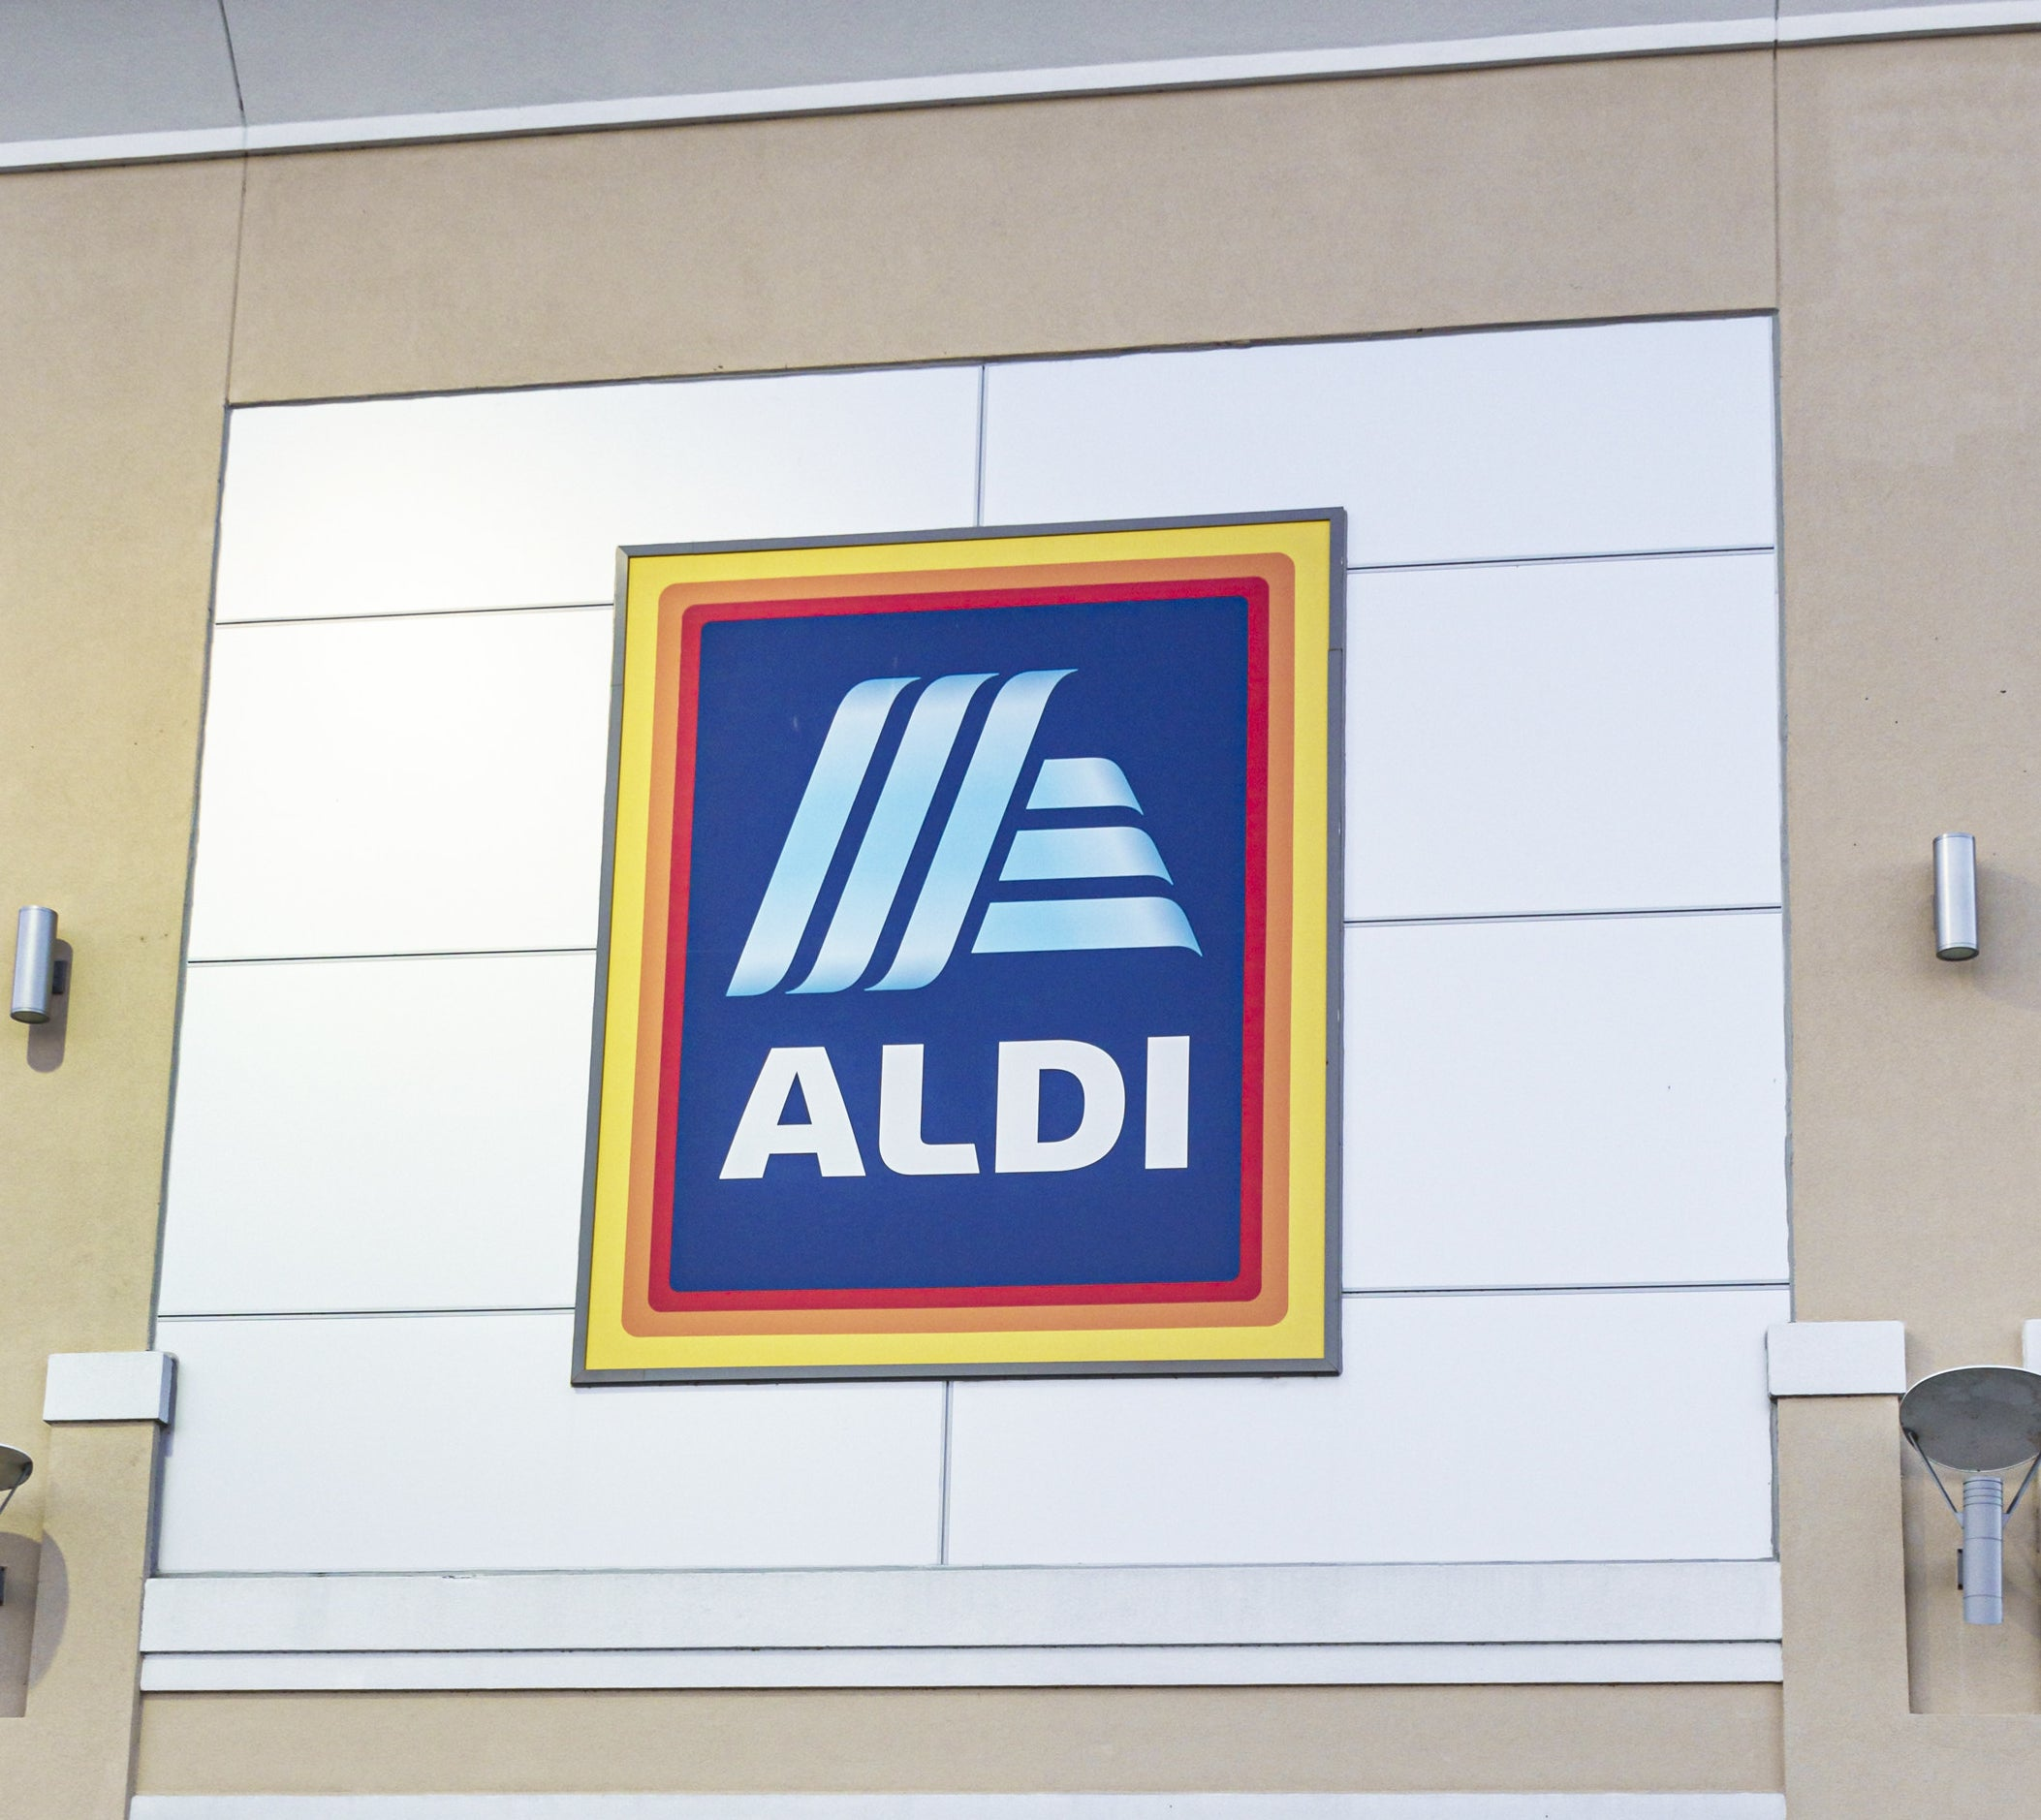 The Aldi sign on a building